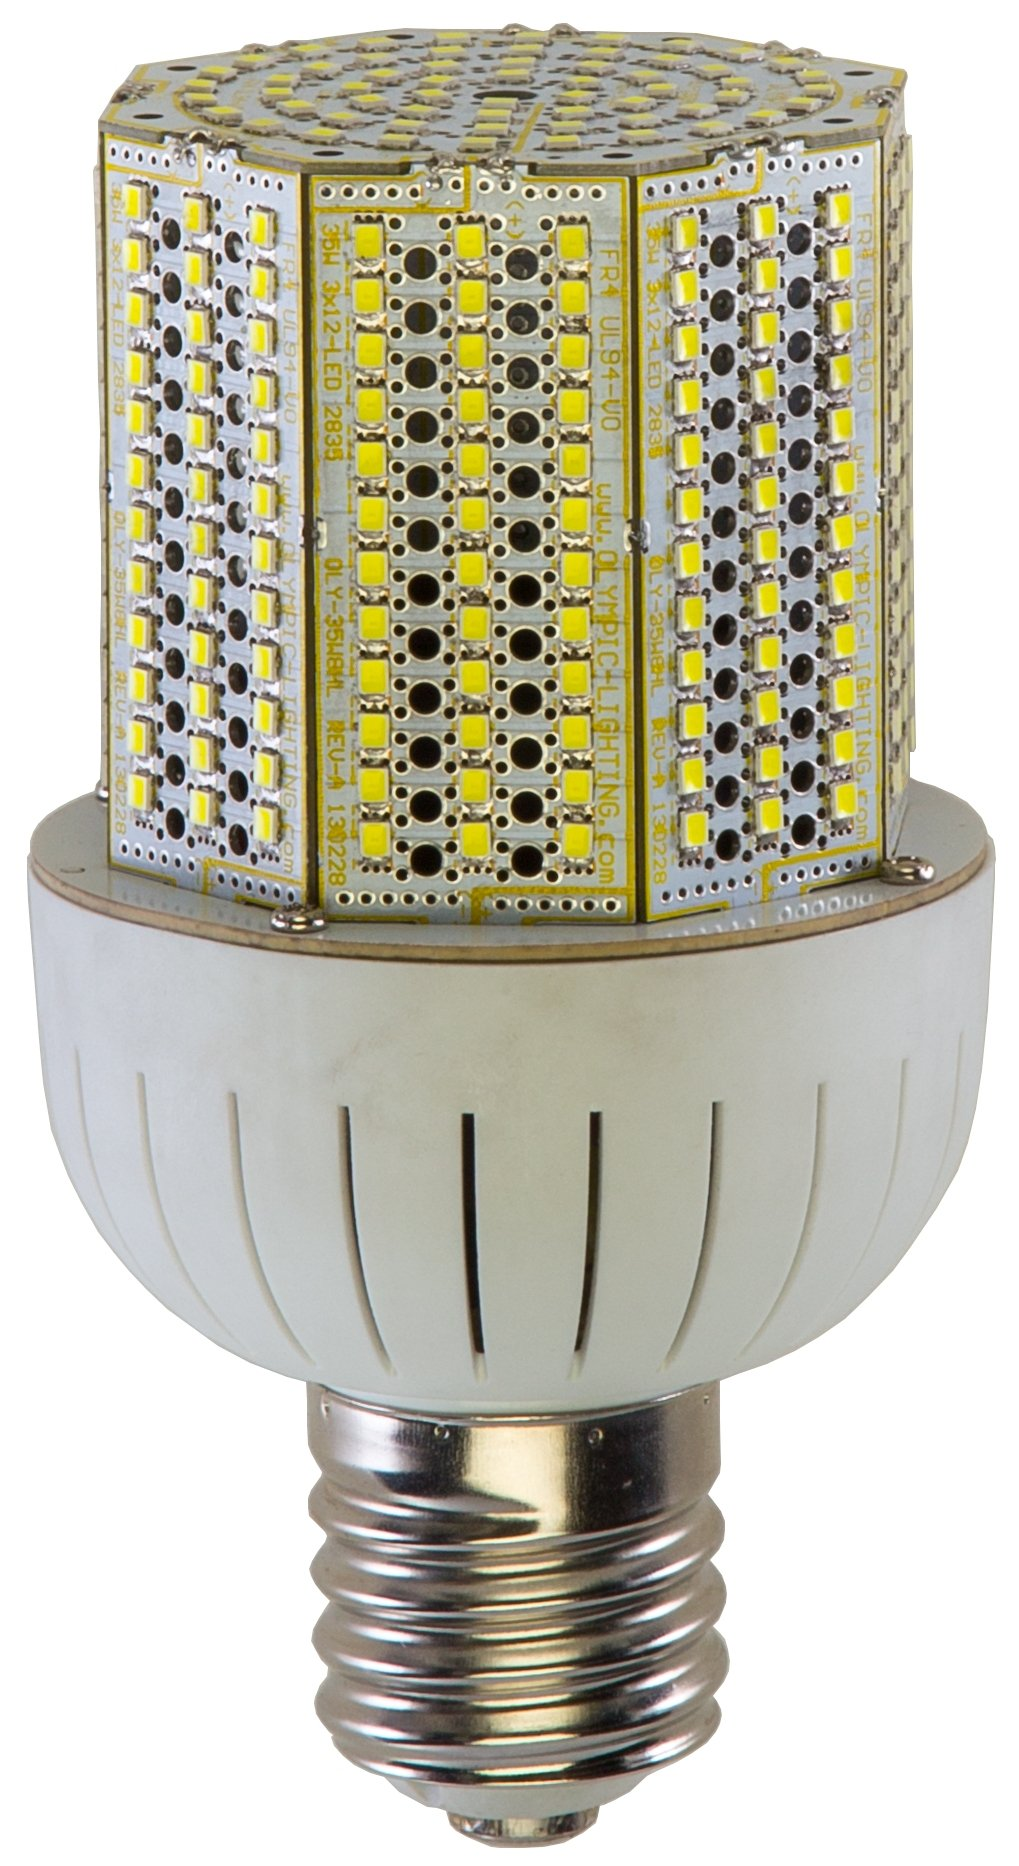 30W Cluster LED Bulb Rotating Base 5500K E39 Replacement for 150W HID (MH, Hps, MVP)